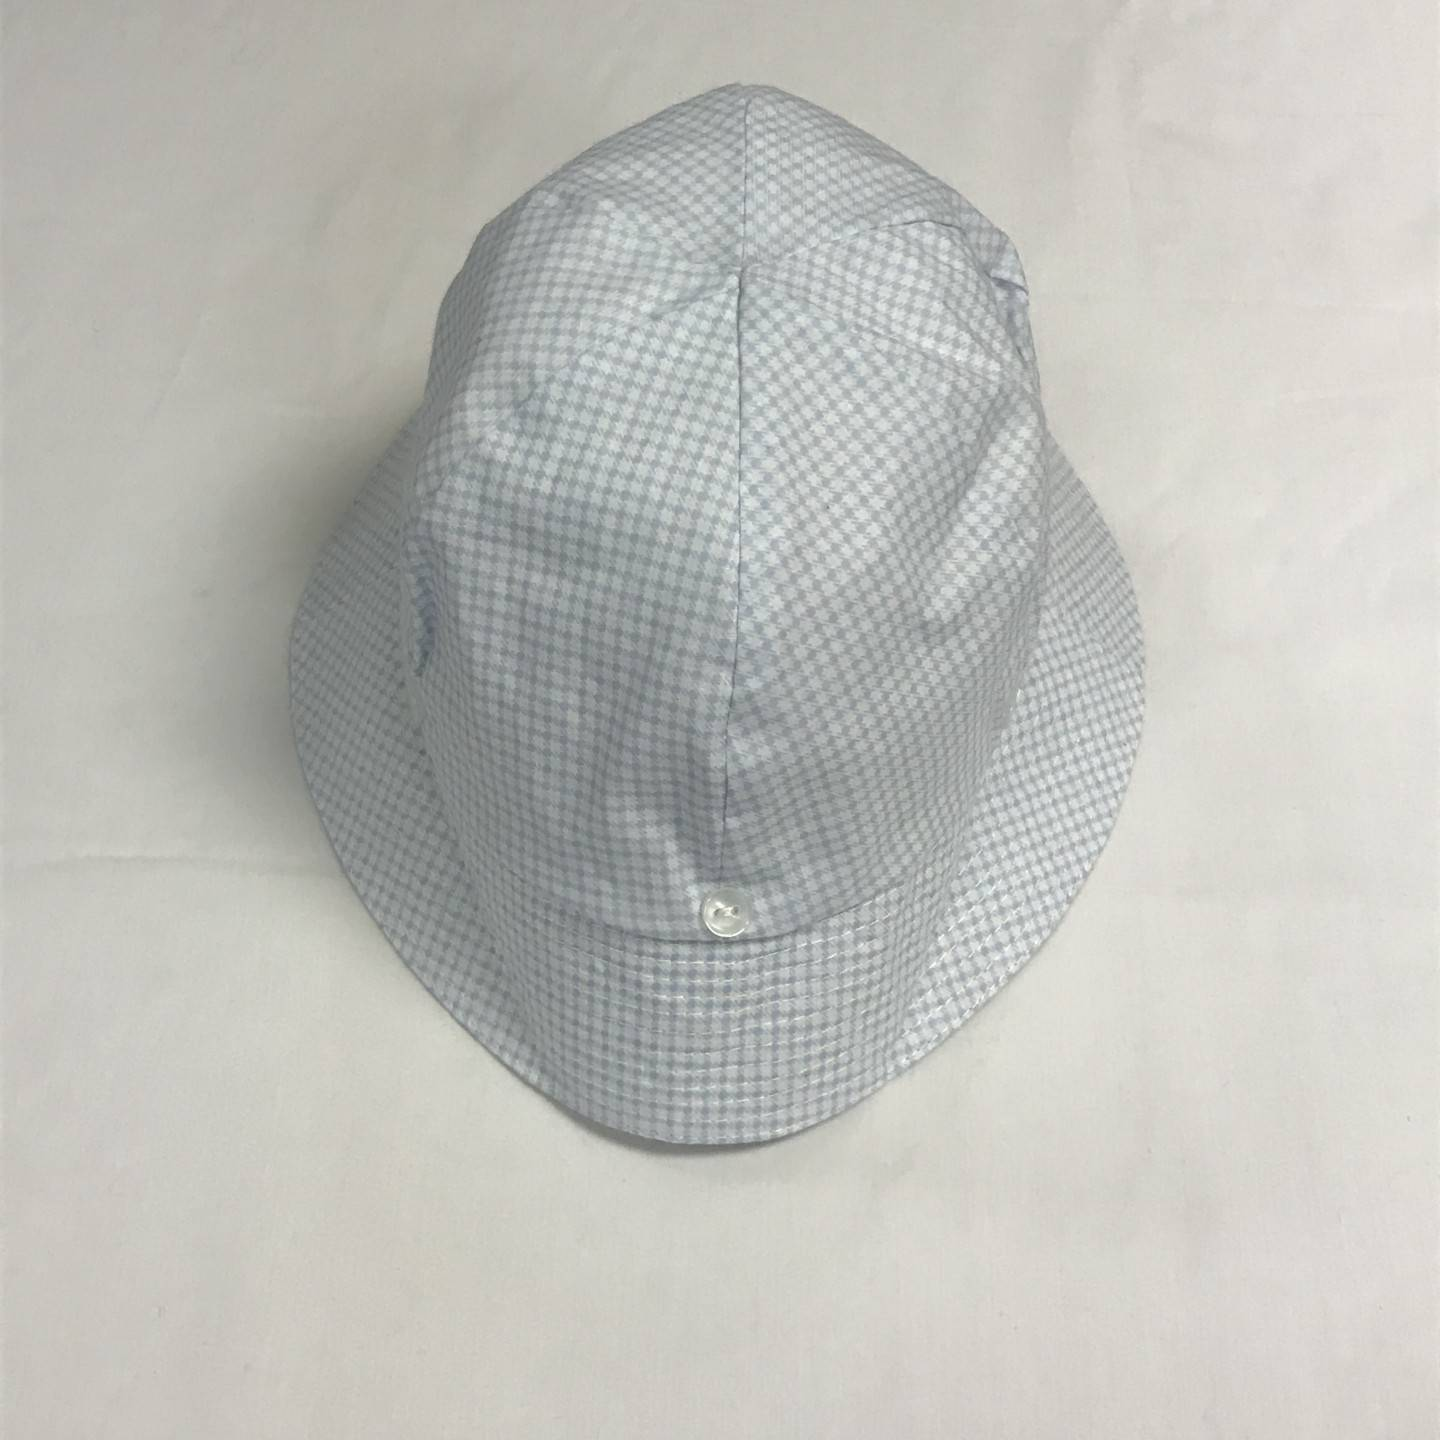 LIGHT BLUE SUN HAT SIZES 2-4 YEARS